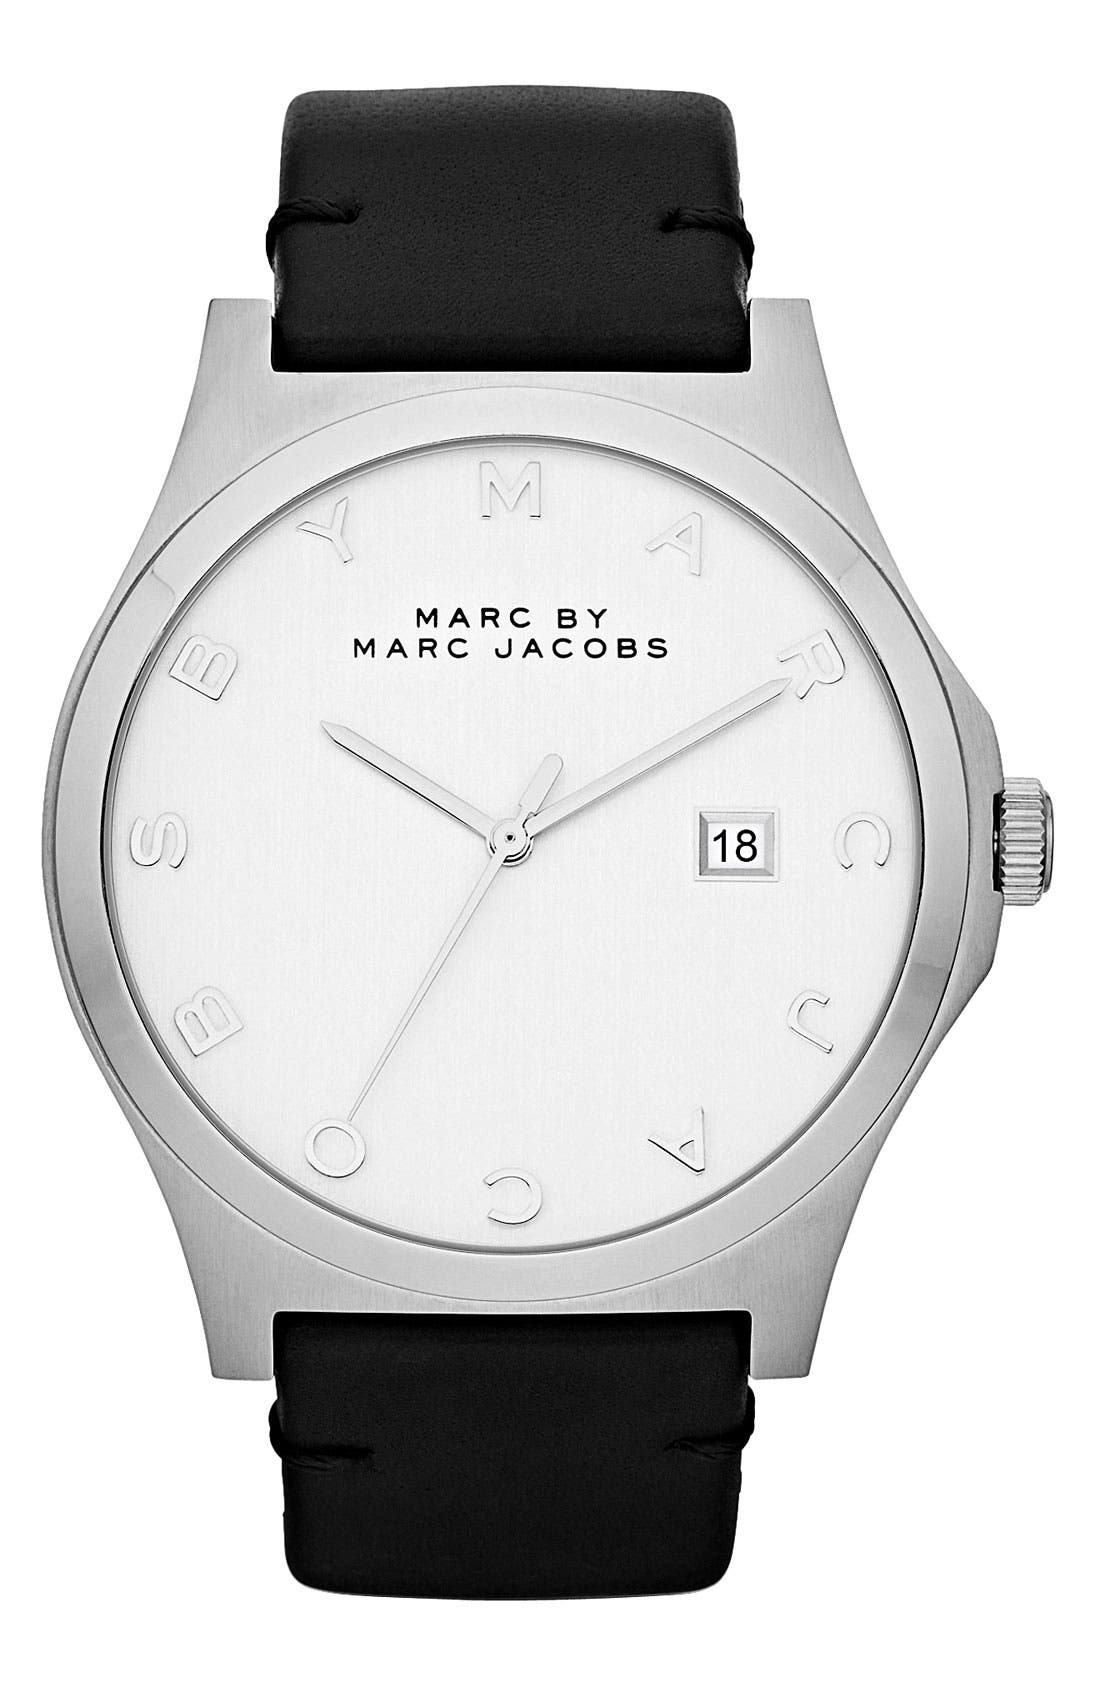 Main Image - MARC JACOBS 'Henry' Leather Strap Watch